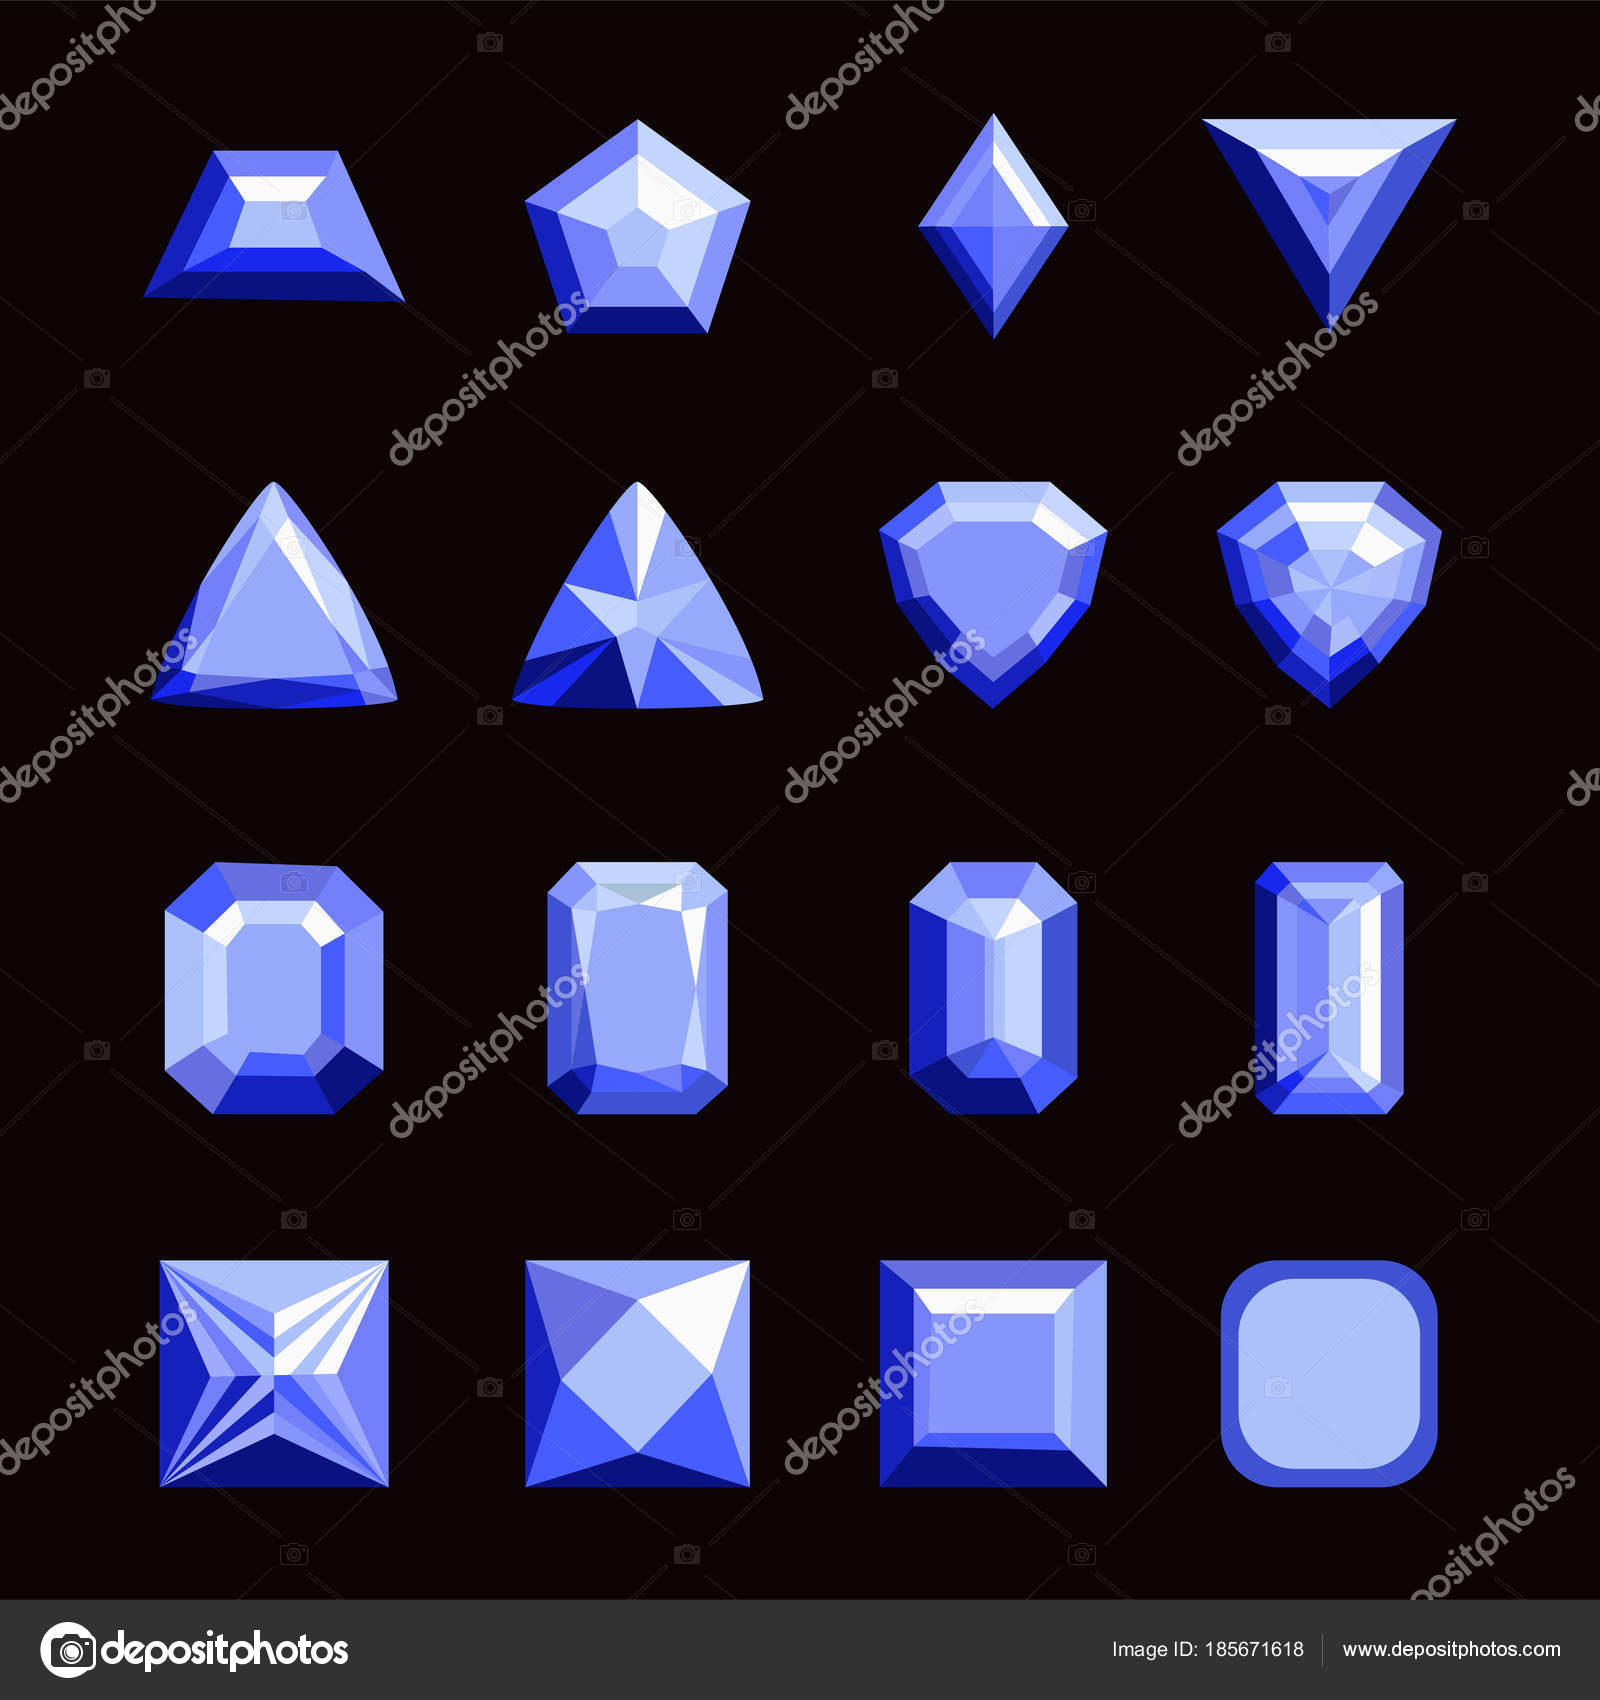 Collection of gems and gemstones. Types of diamond cutting. A se ...